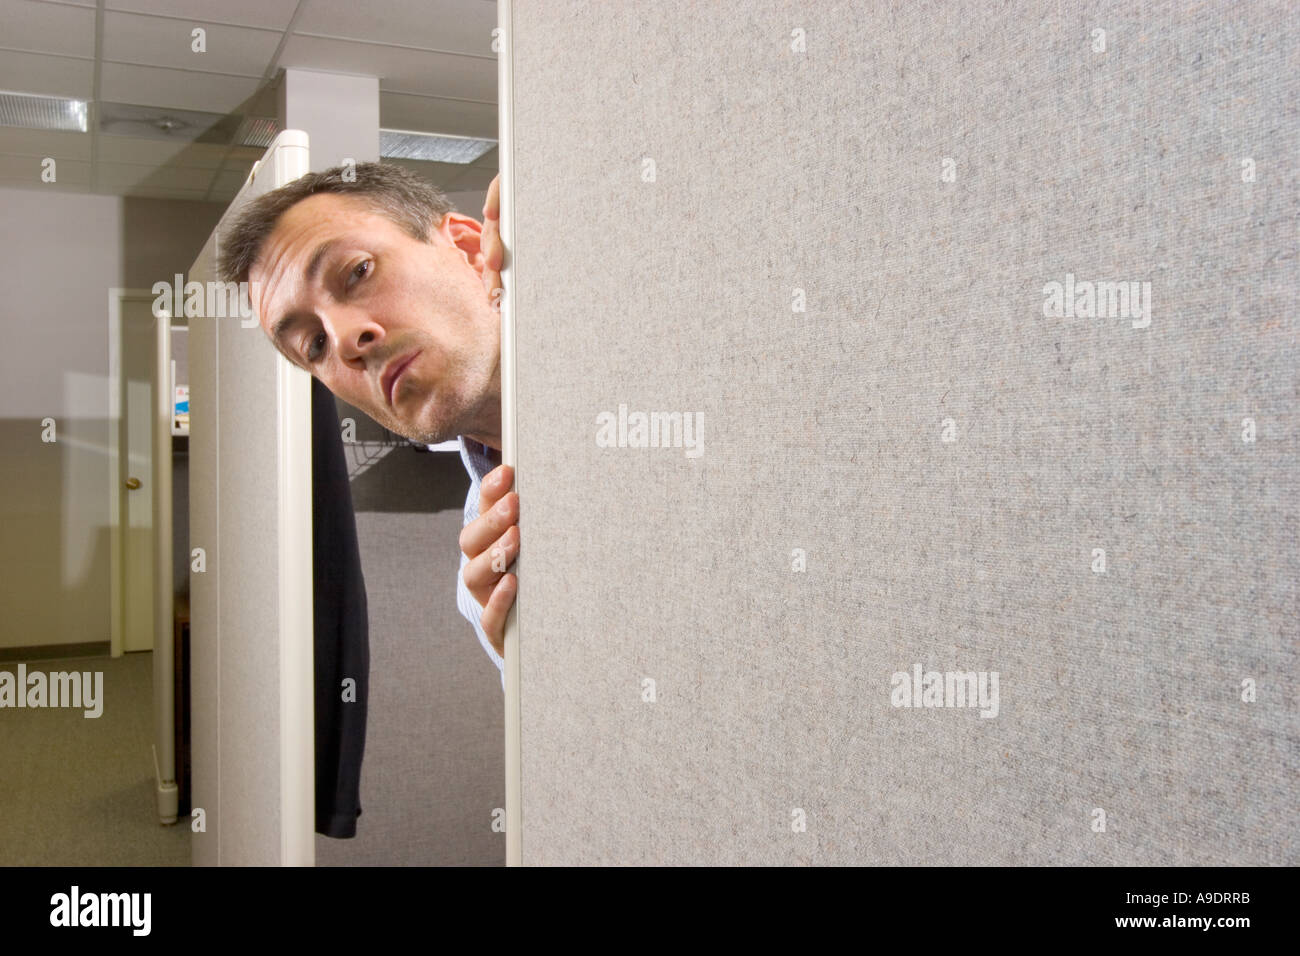 images of an office cartoon man peeking around the corner of an office cubicle stock photo